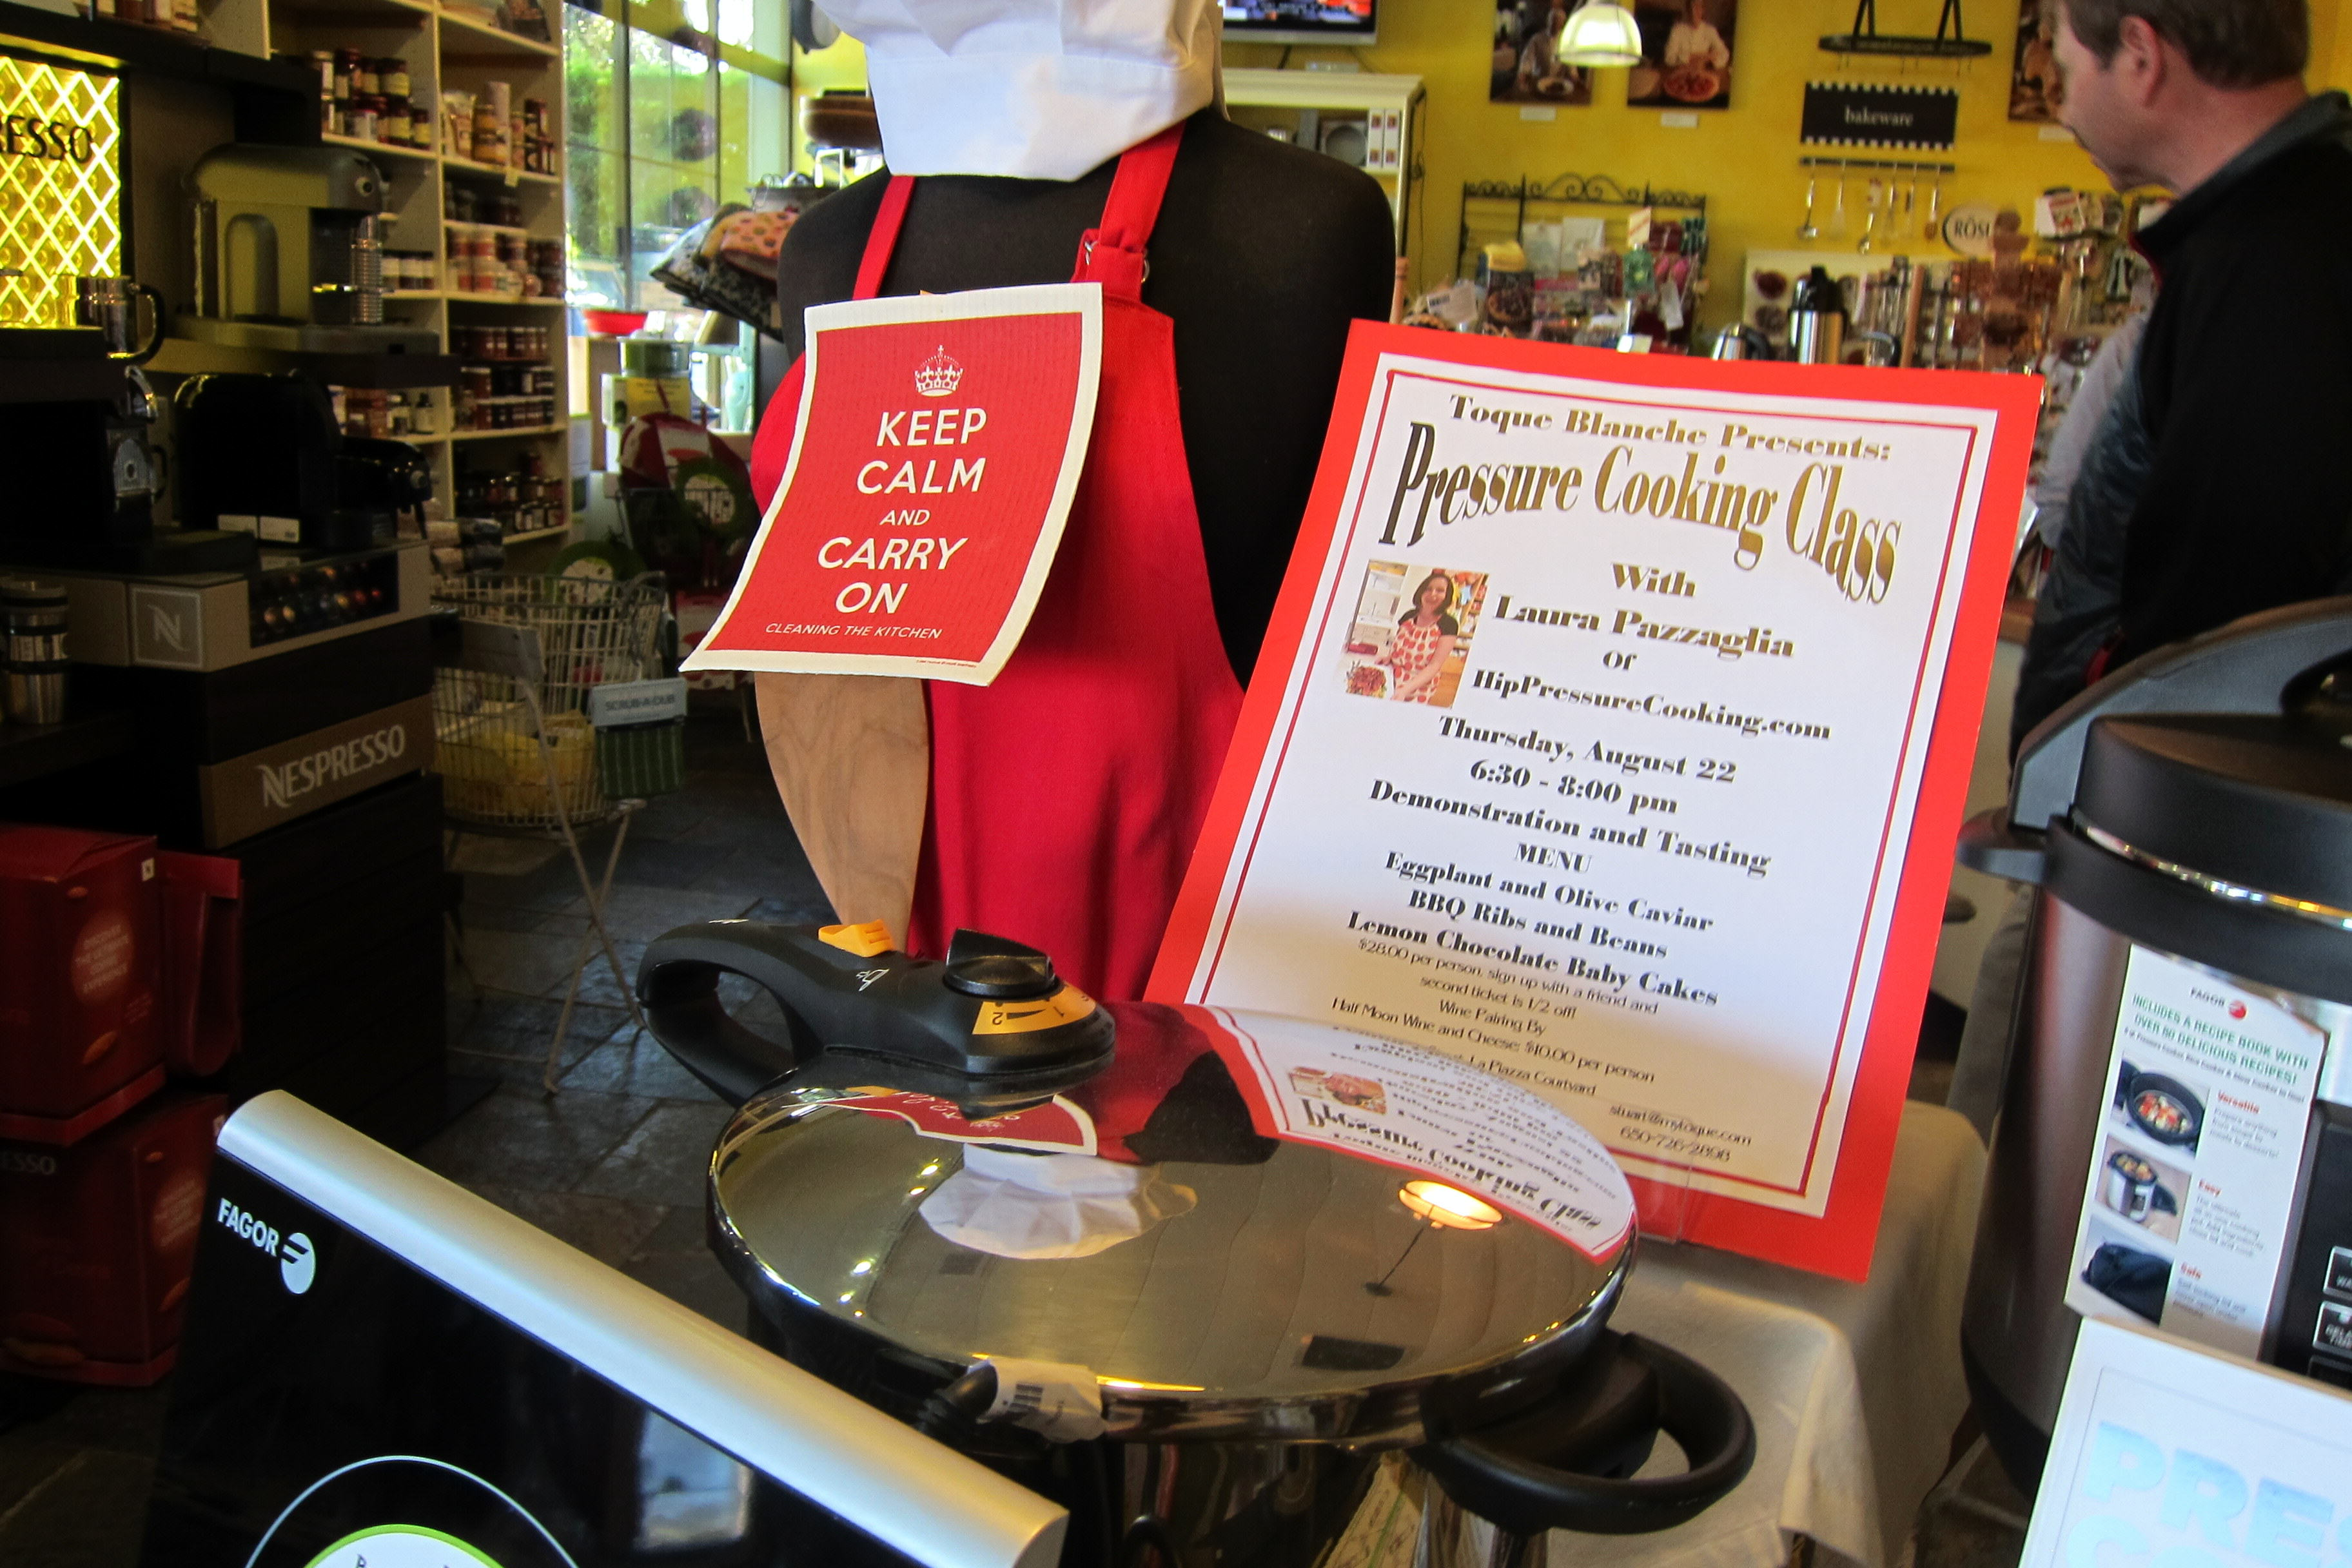 Sign announcing pressure cooking class